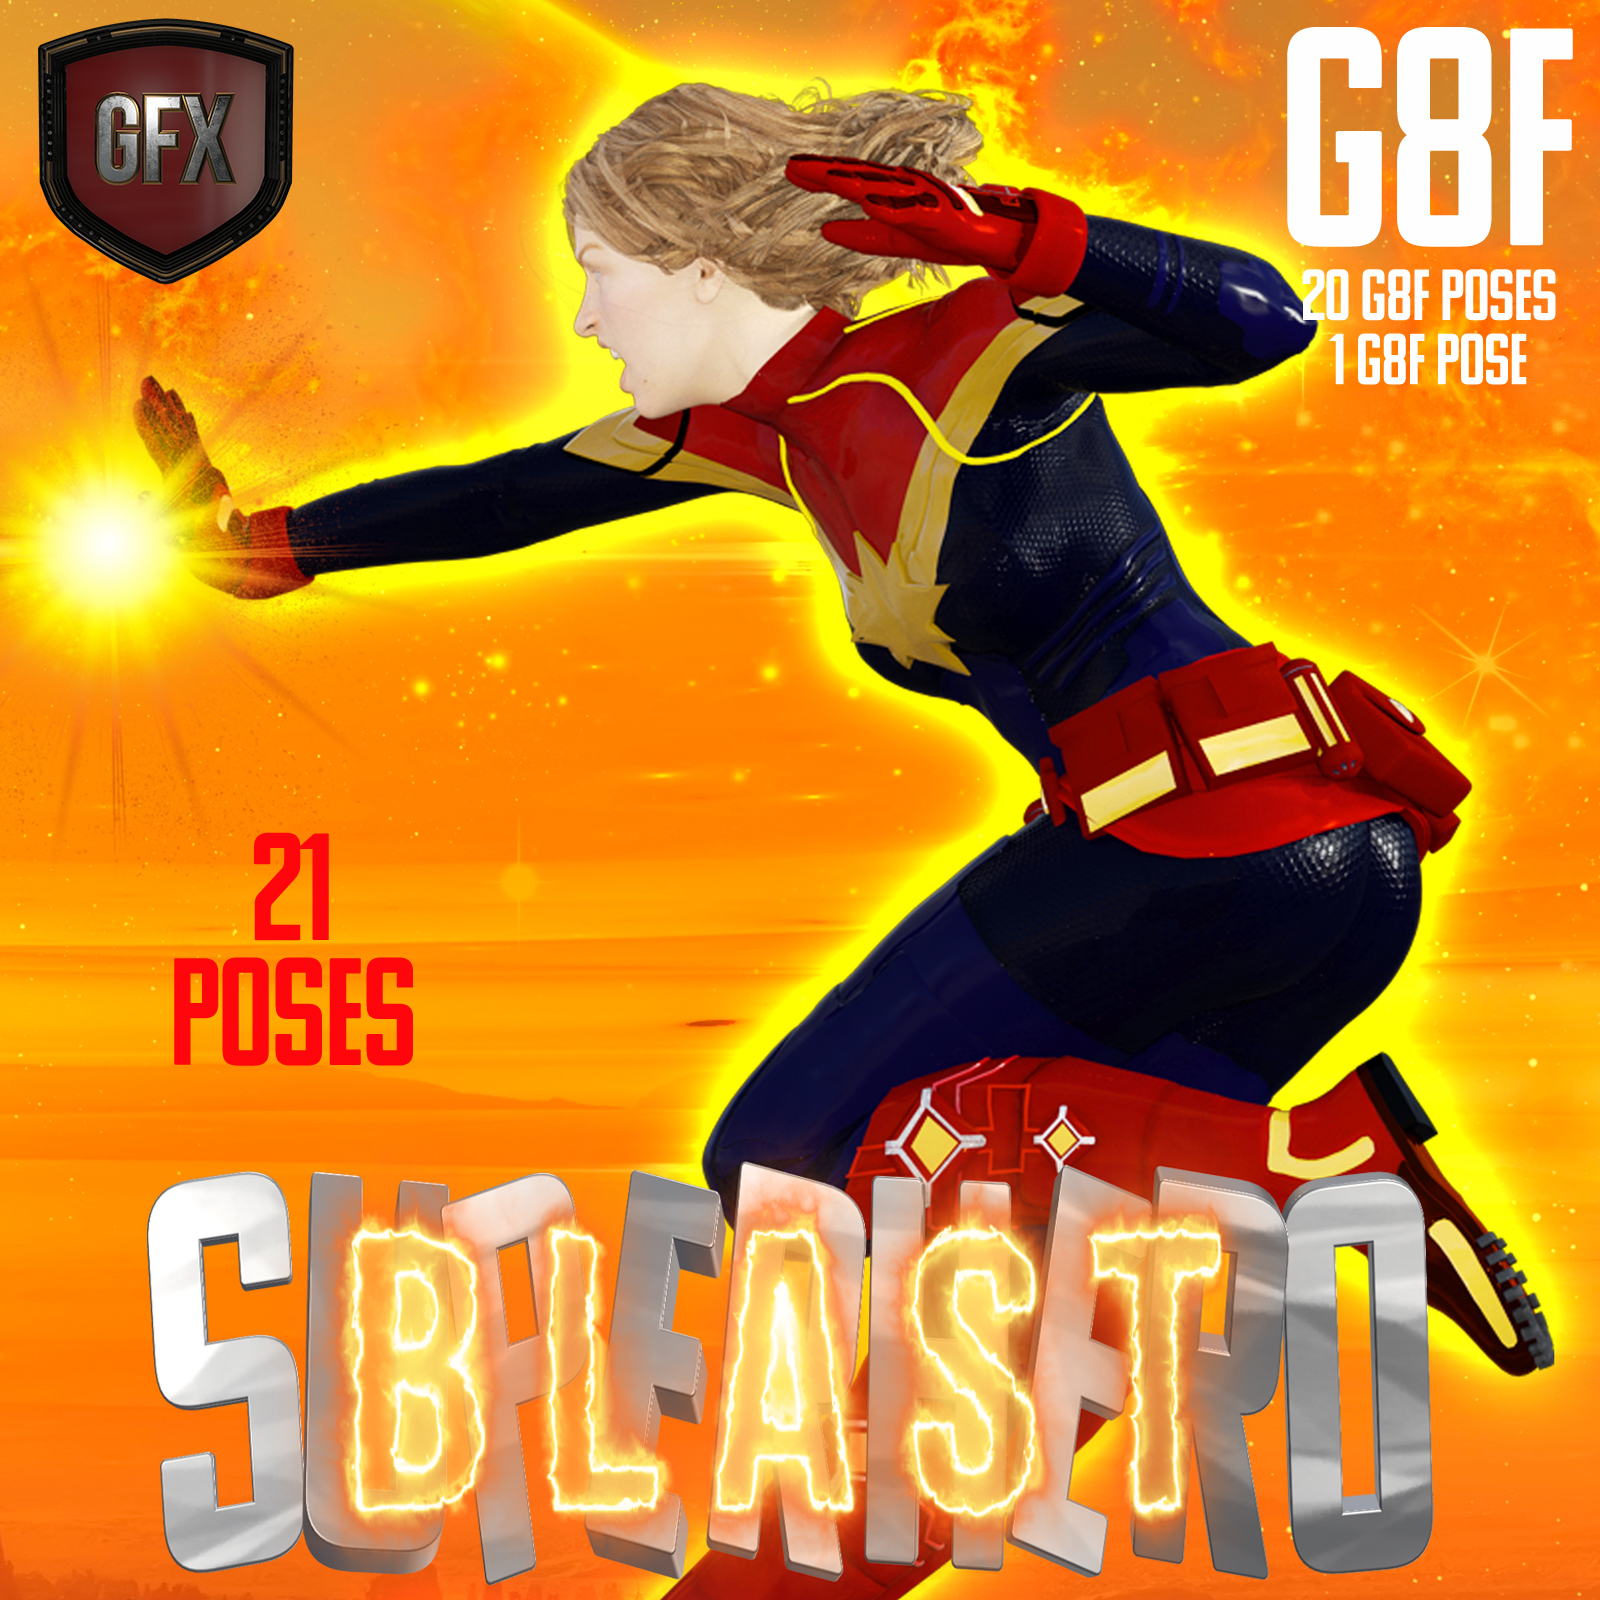 SuperHero Blast for G8F Volume 1 by GriffinFX